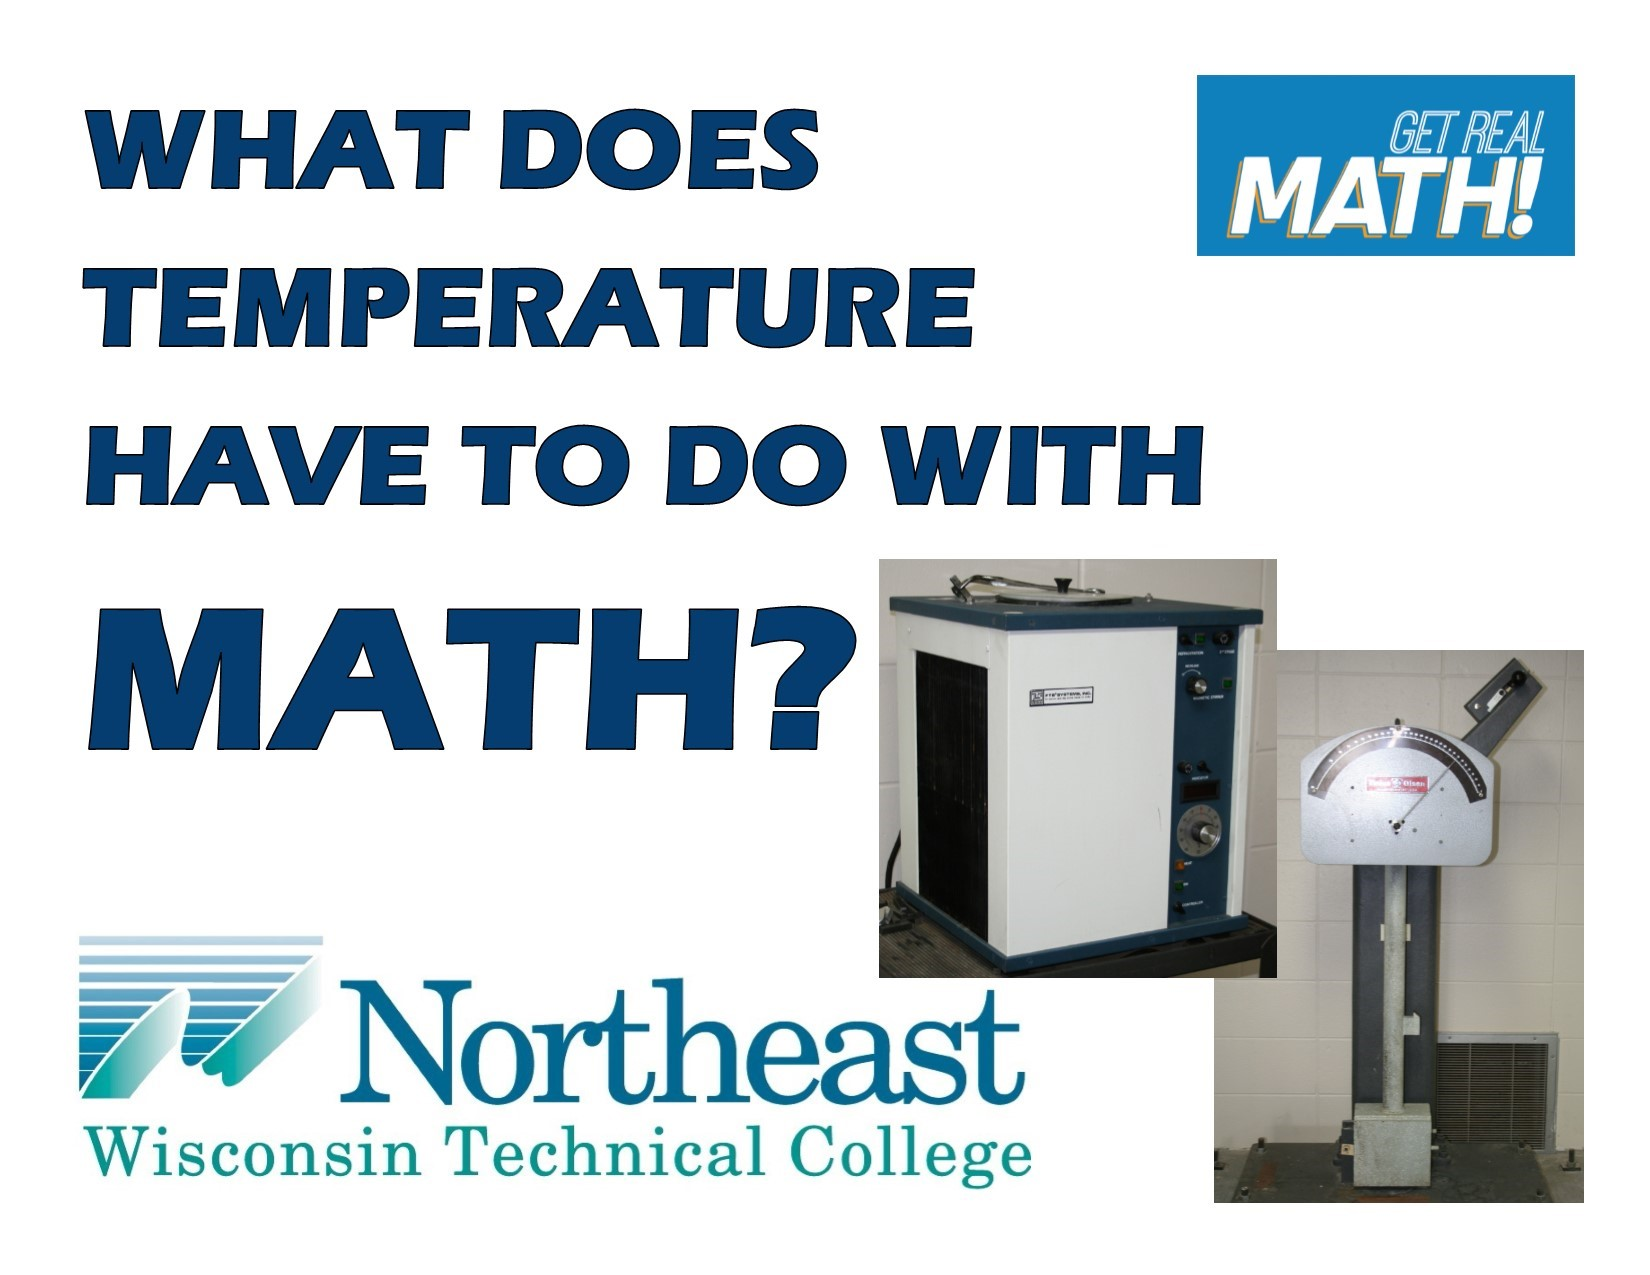 What does temperature have to do with math?